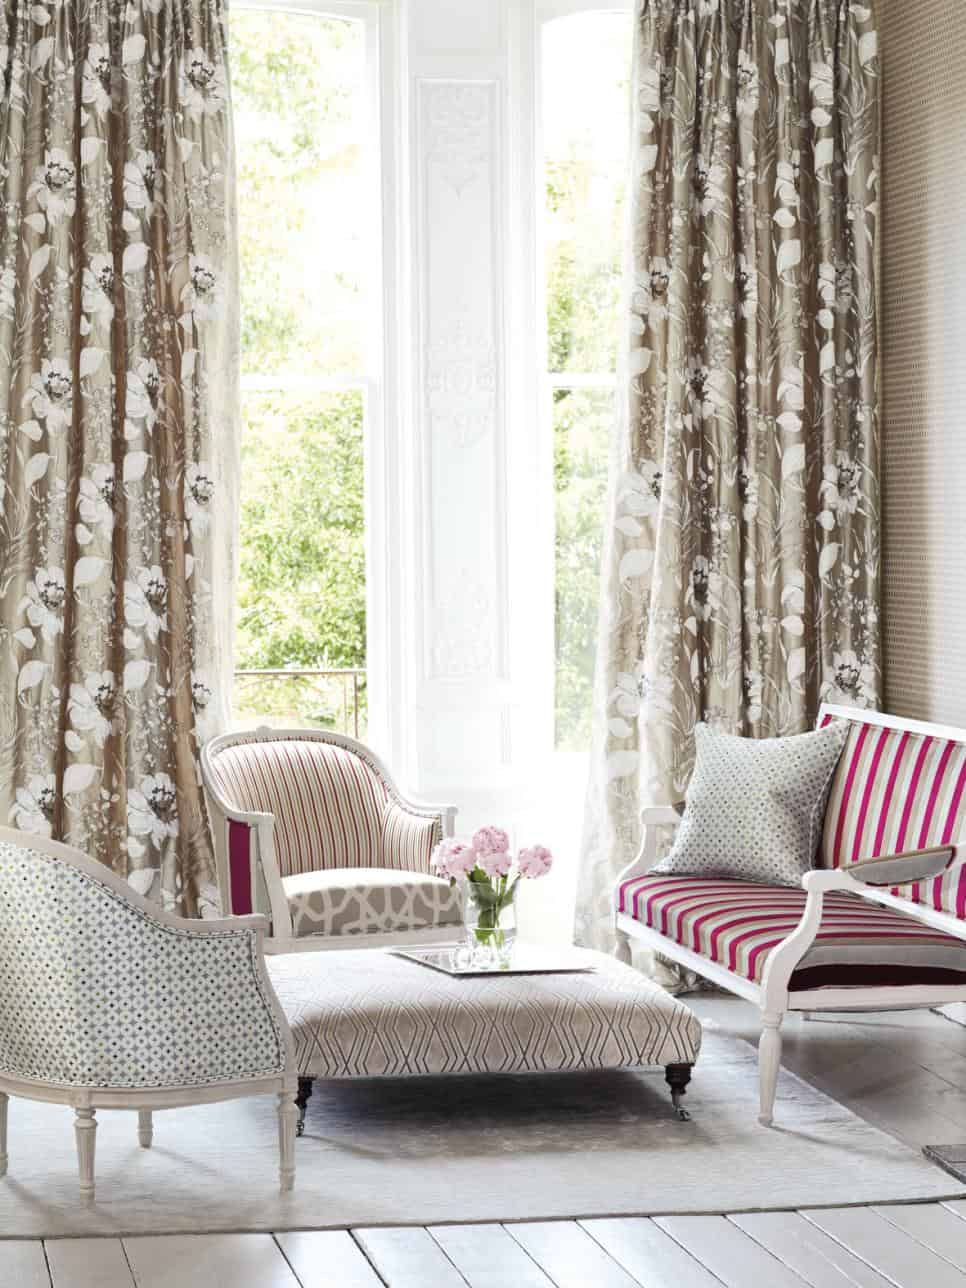 Trendy Ideas for Small Living Room Space on Draping Curtains Ideas  id=46329